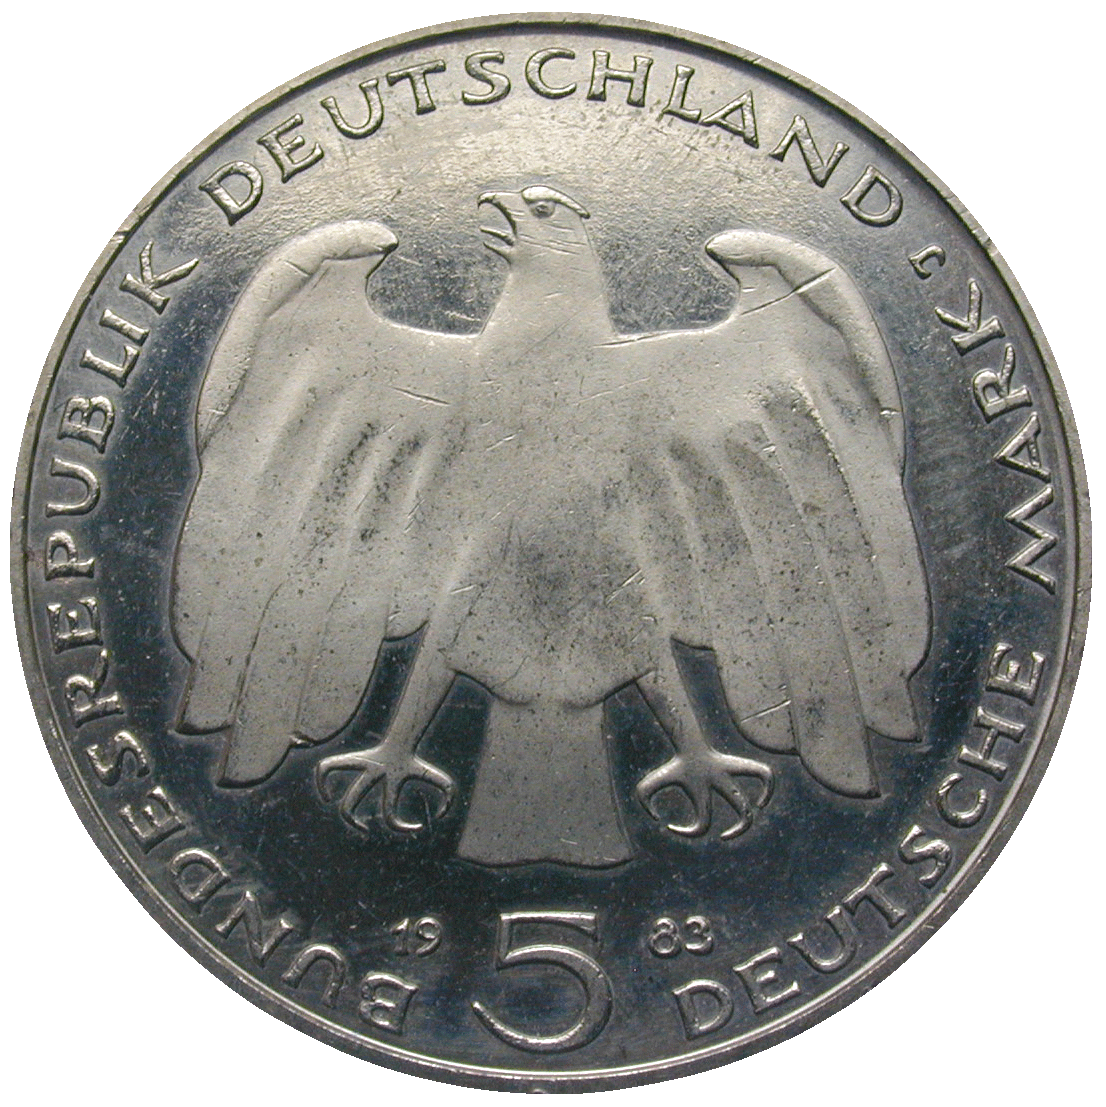 Federal Republic of Germany, 5 Deutsche Mark 1983 (obverse)